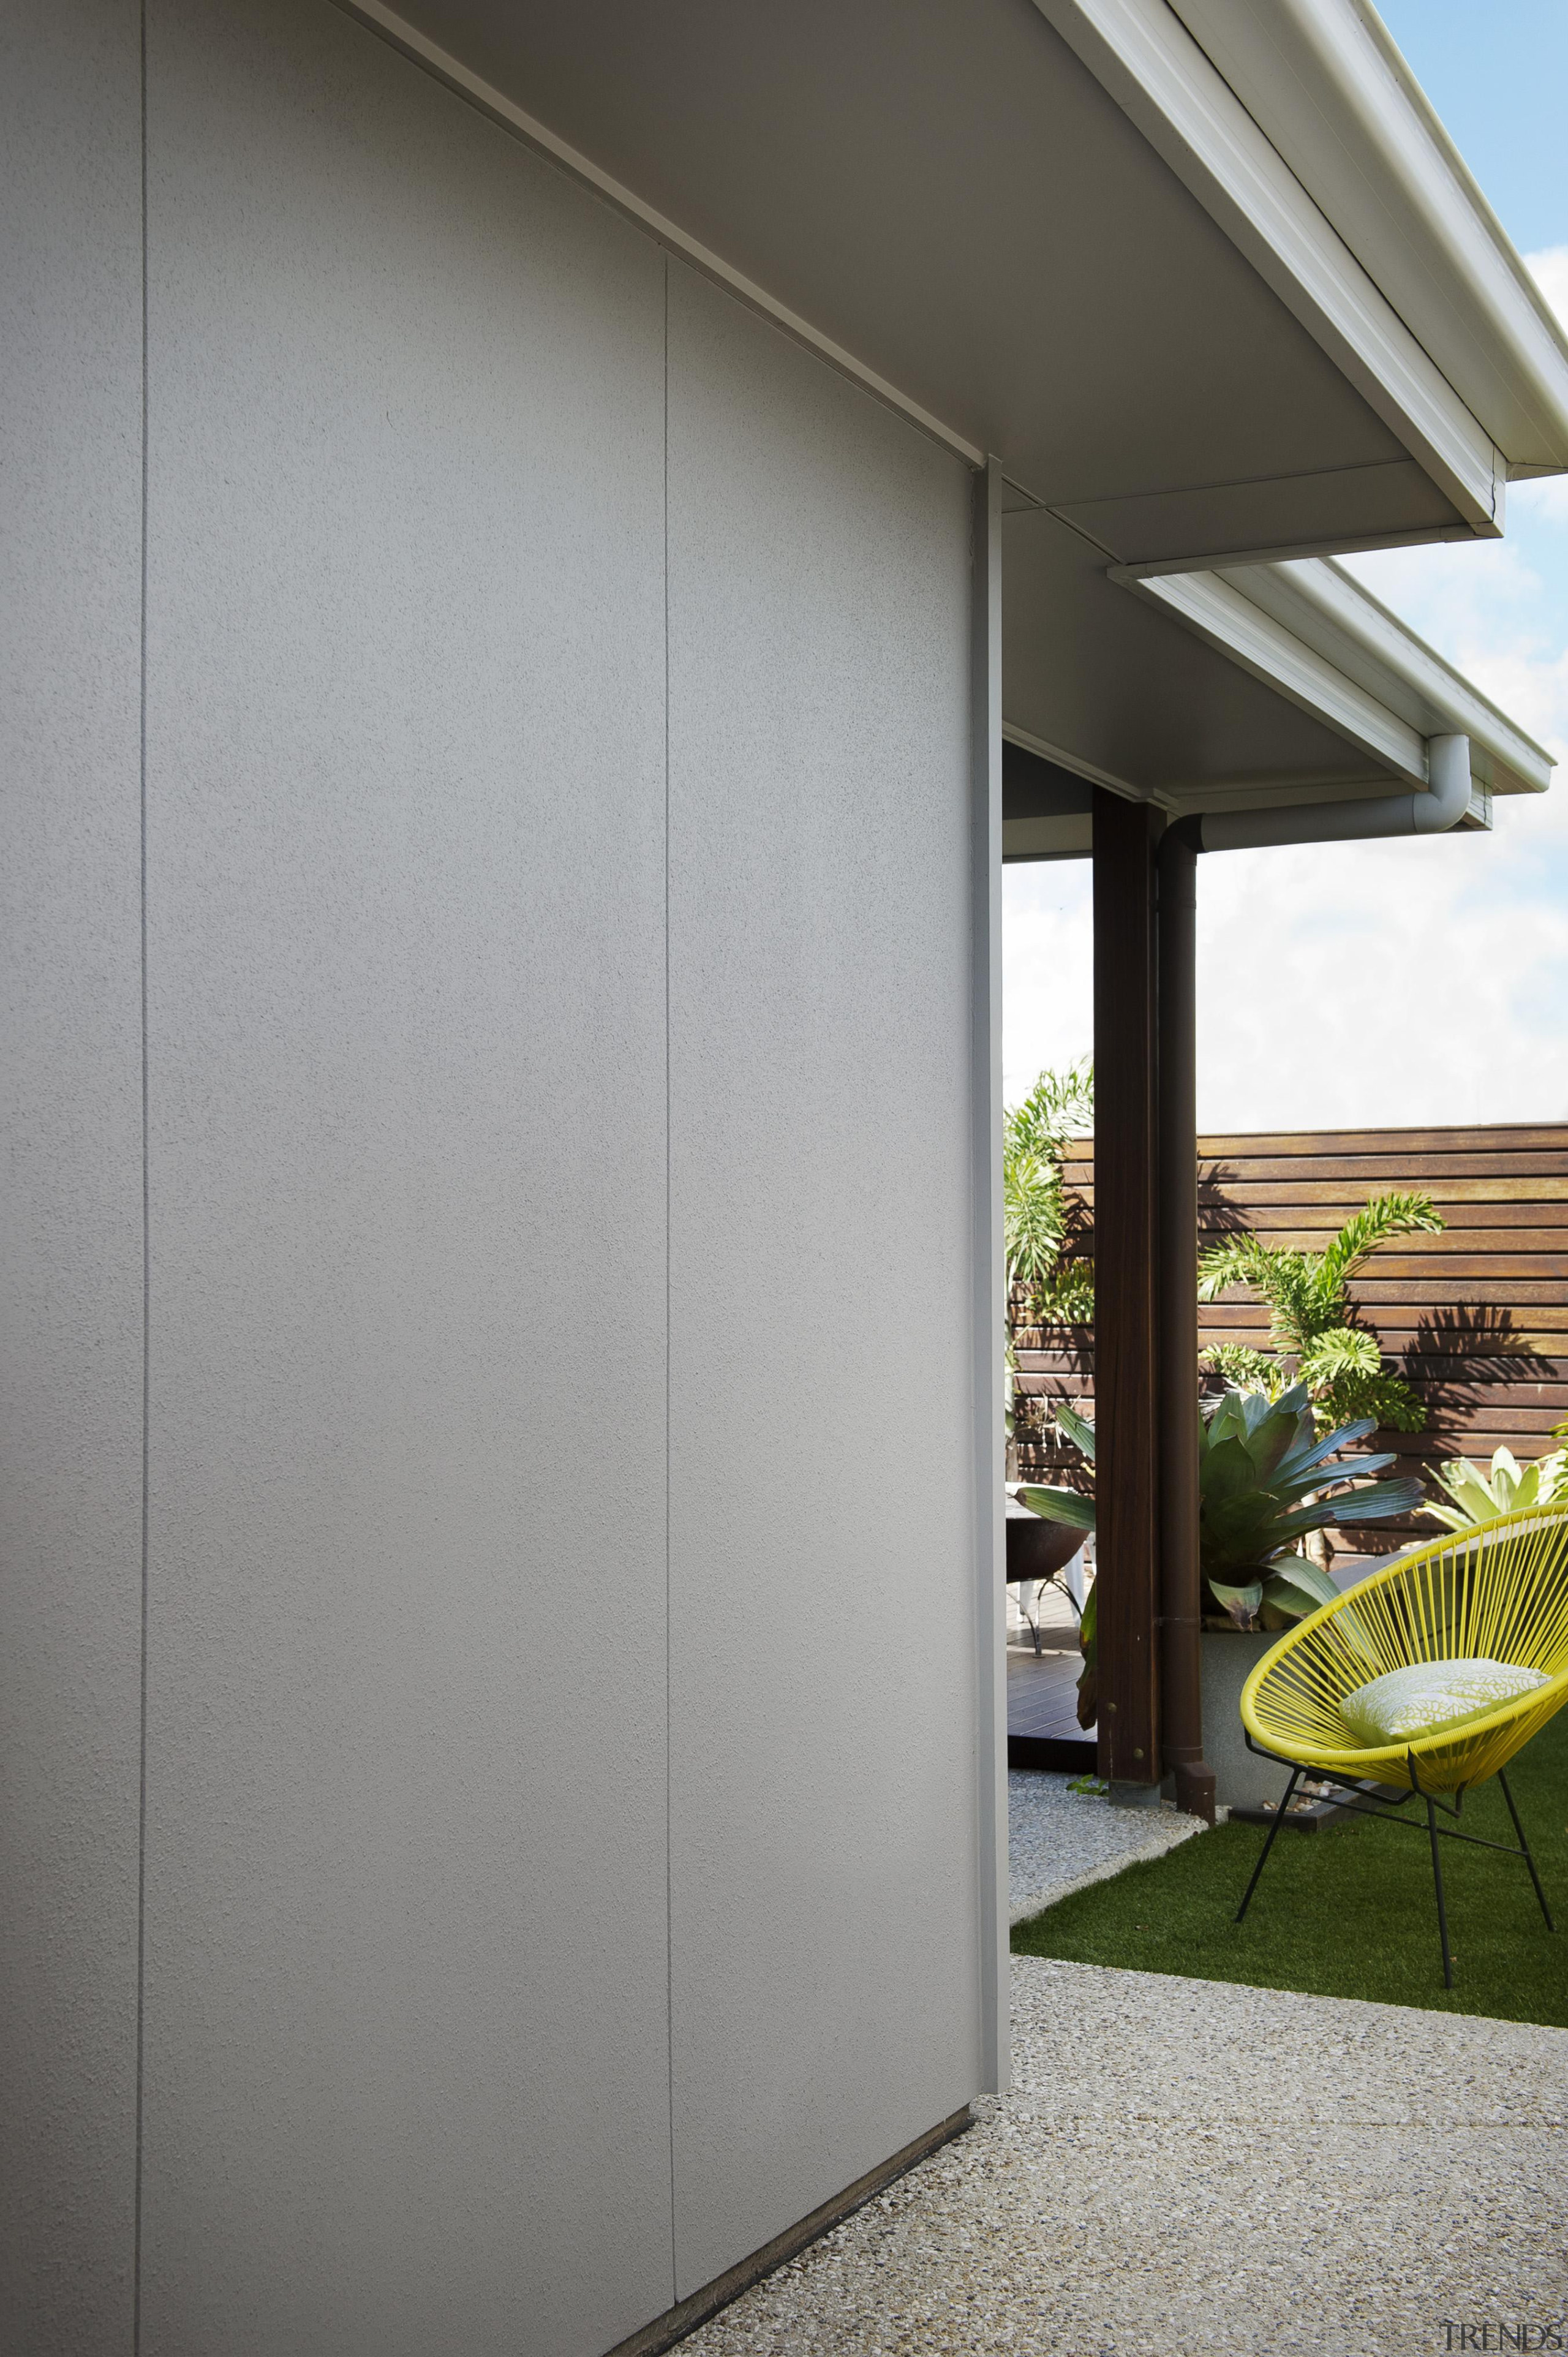 EasyLap Panel 2 - EasyLap Panel - architecture architecture, daylighting, door, house, interior design, wall, gray